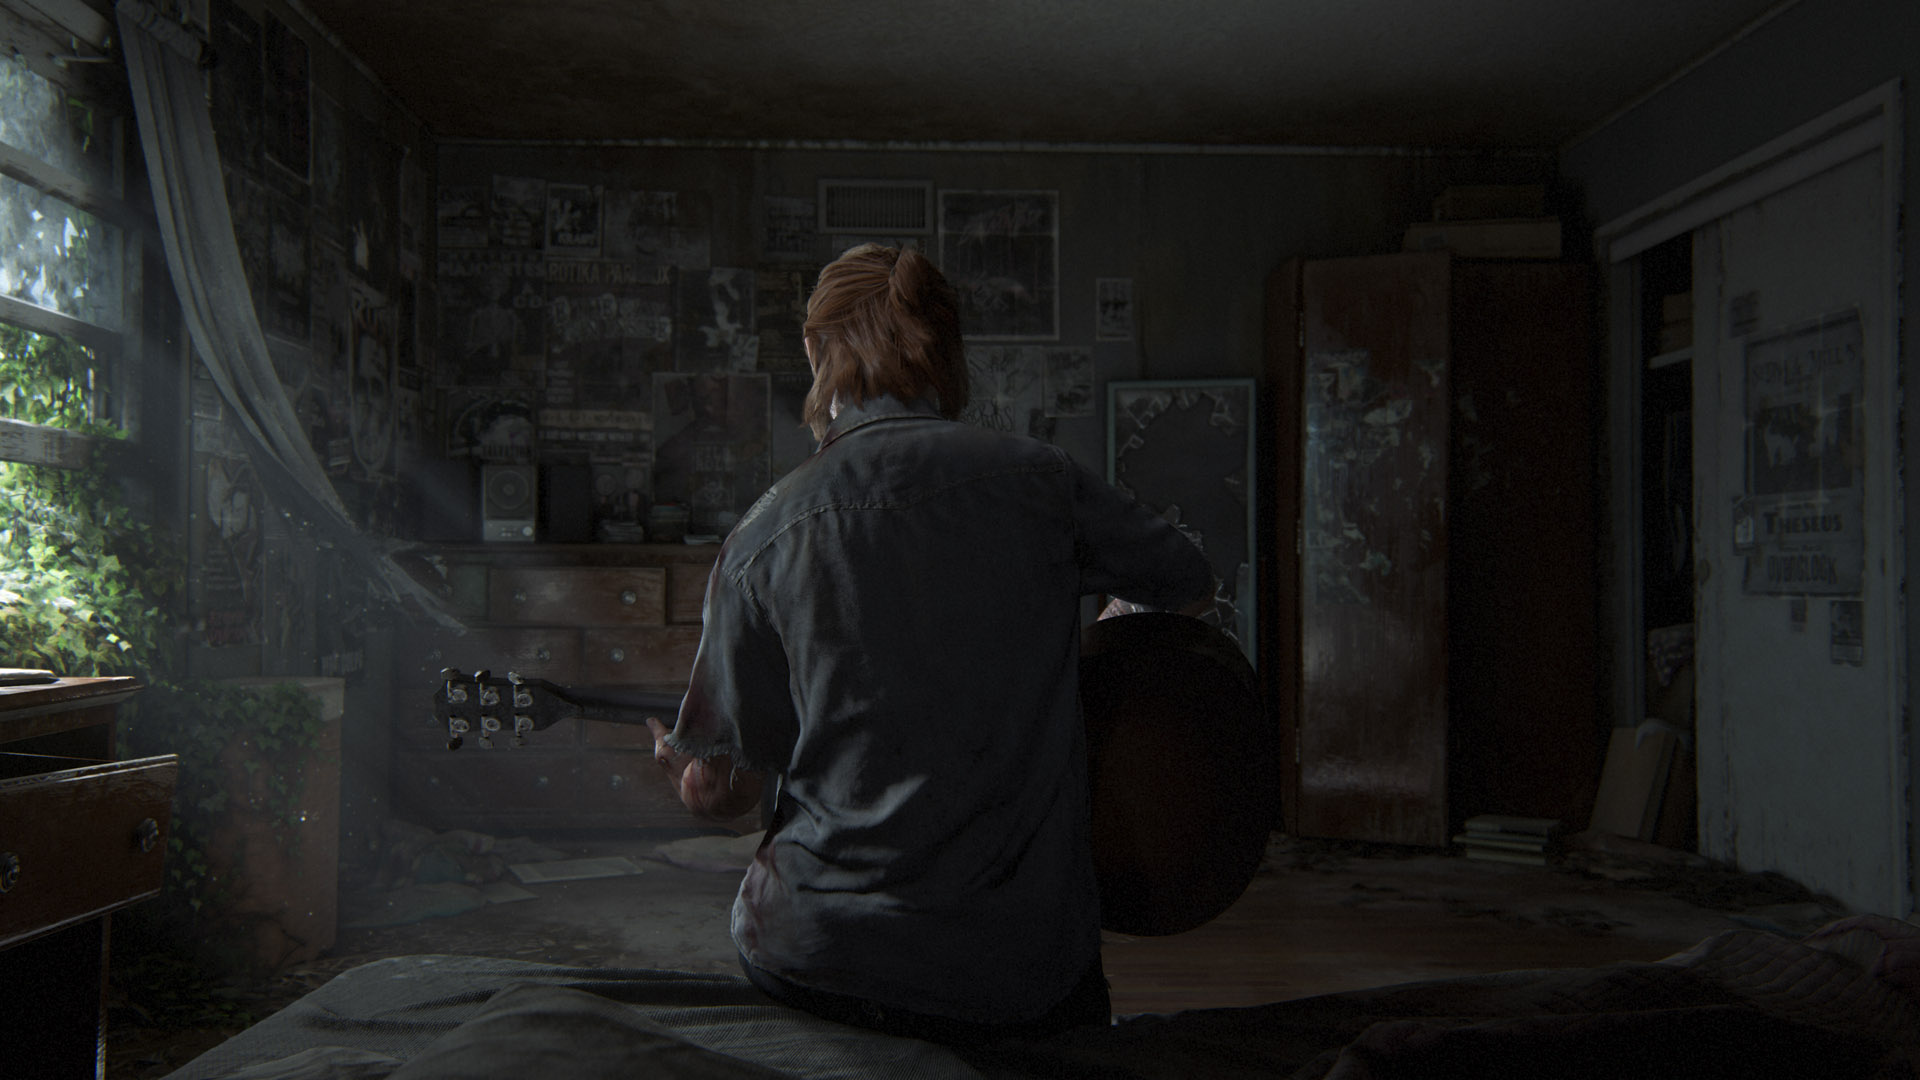 Dayz Karte Ps4.The Last Of Us Part Ii Appears To Be Set In Seattle Push